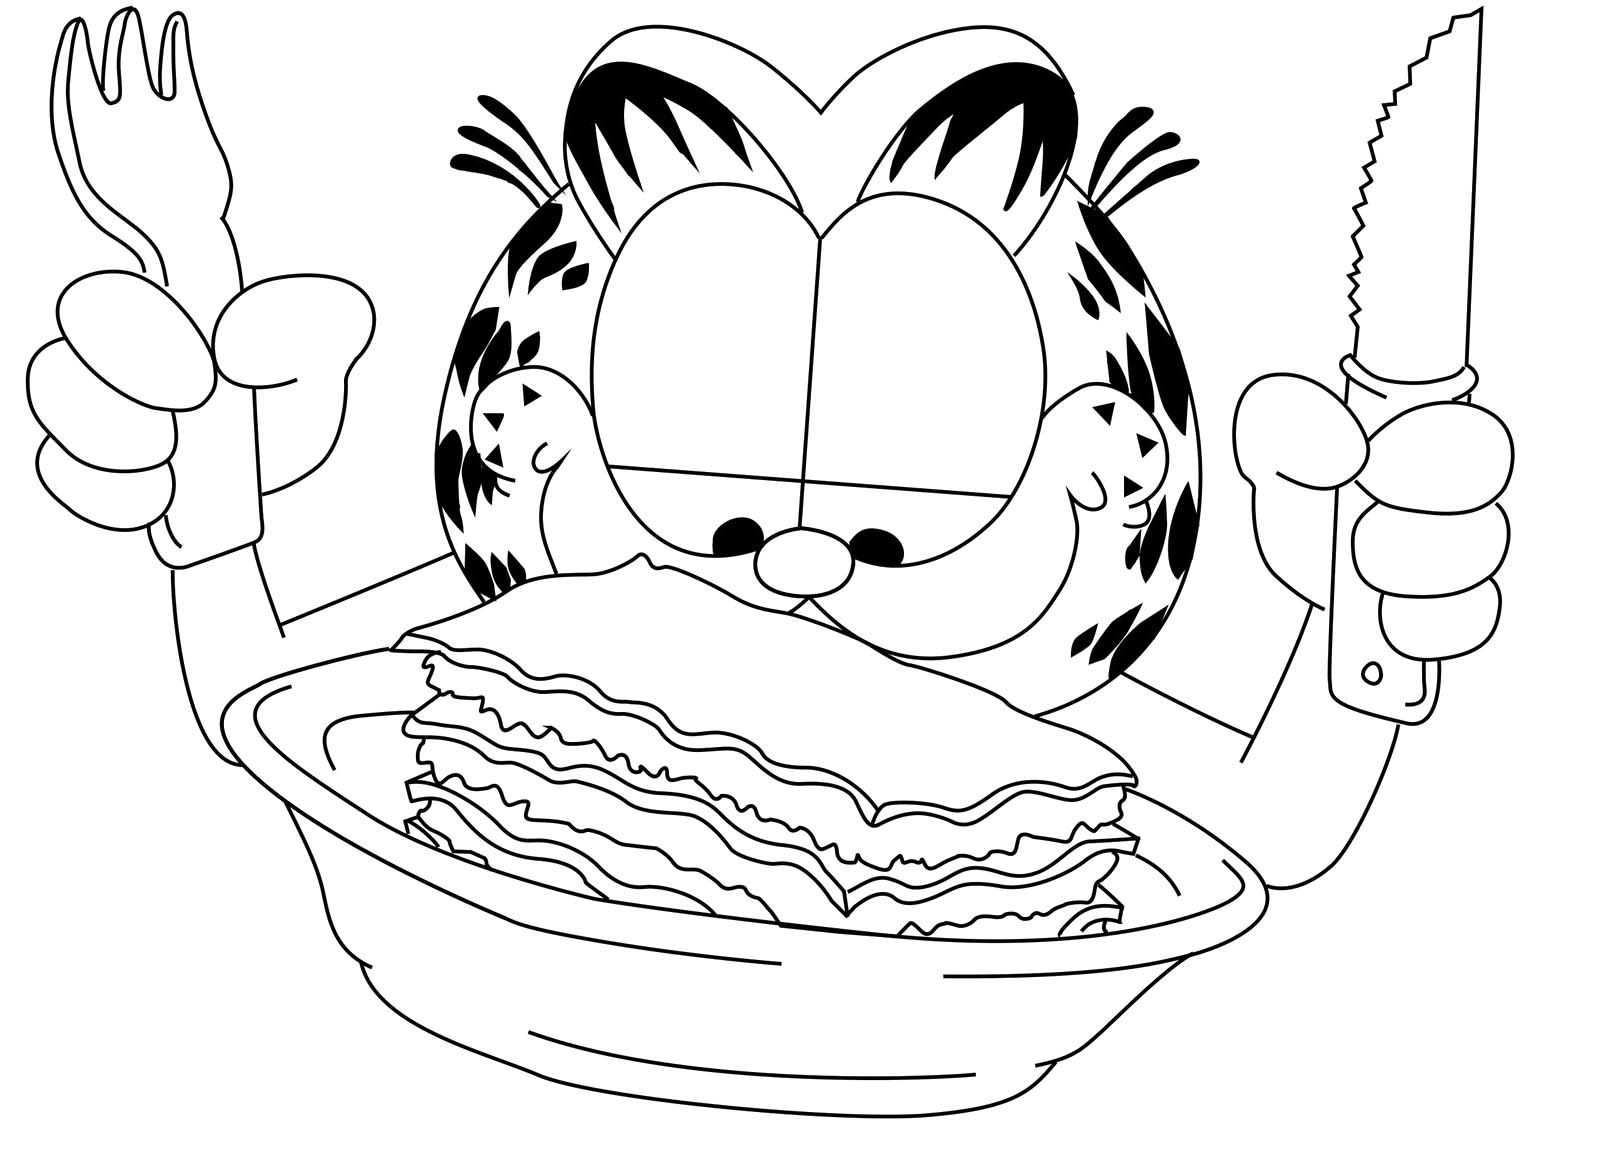 Garfield Wanted To Cut The Cake Using A Knife And Fork Coloring Page ...